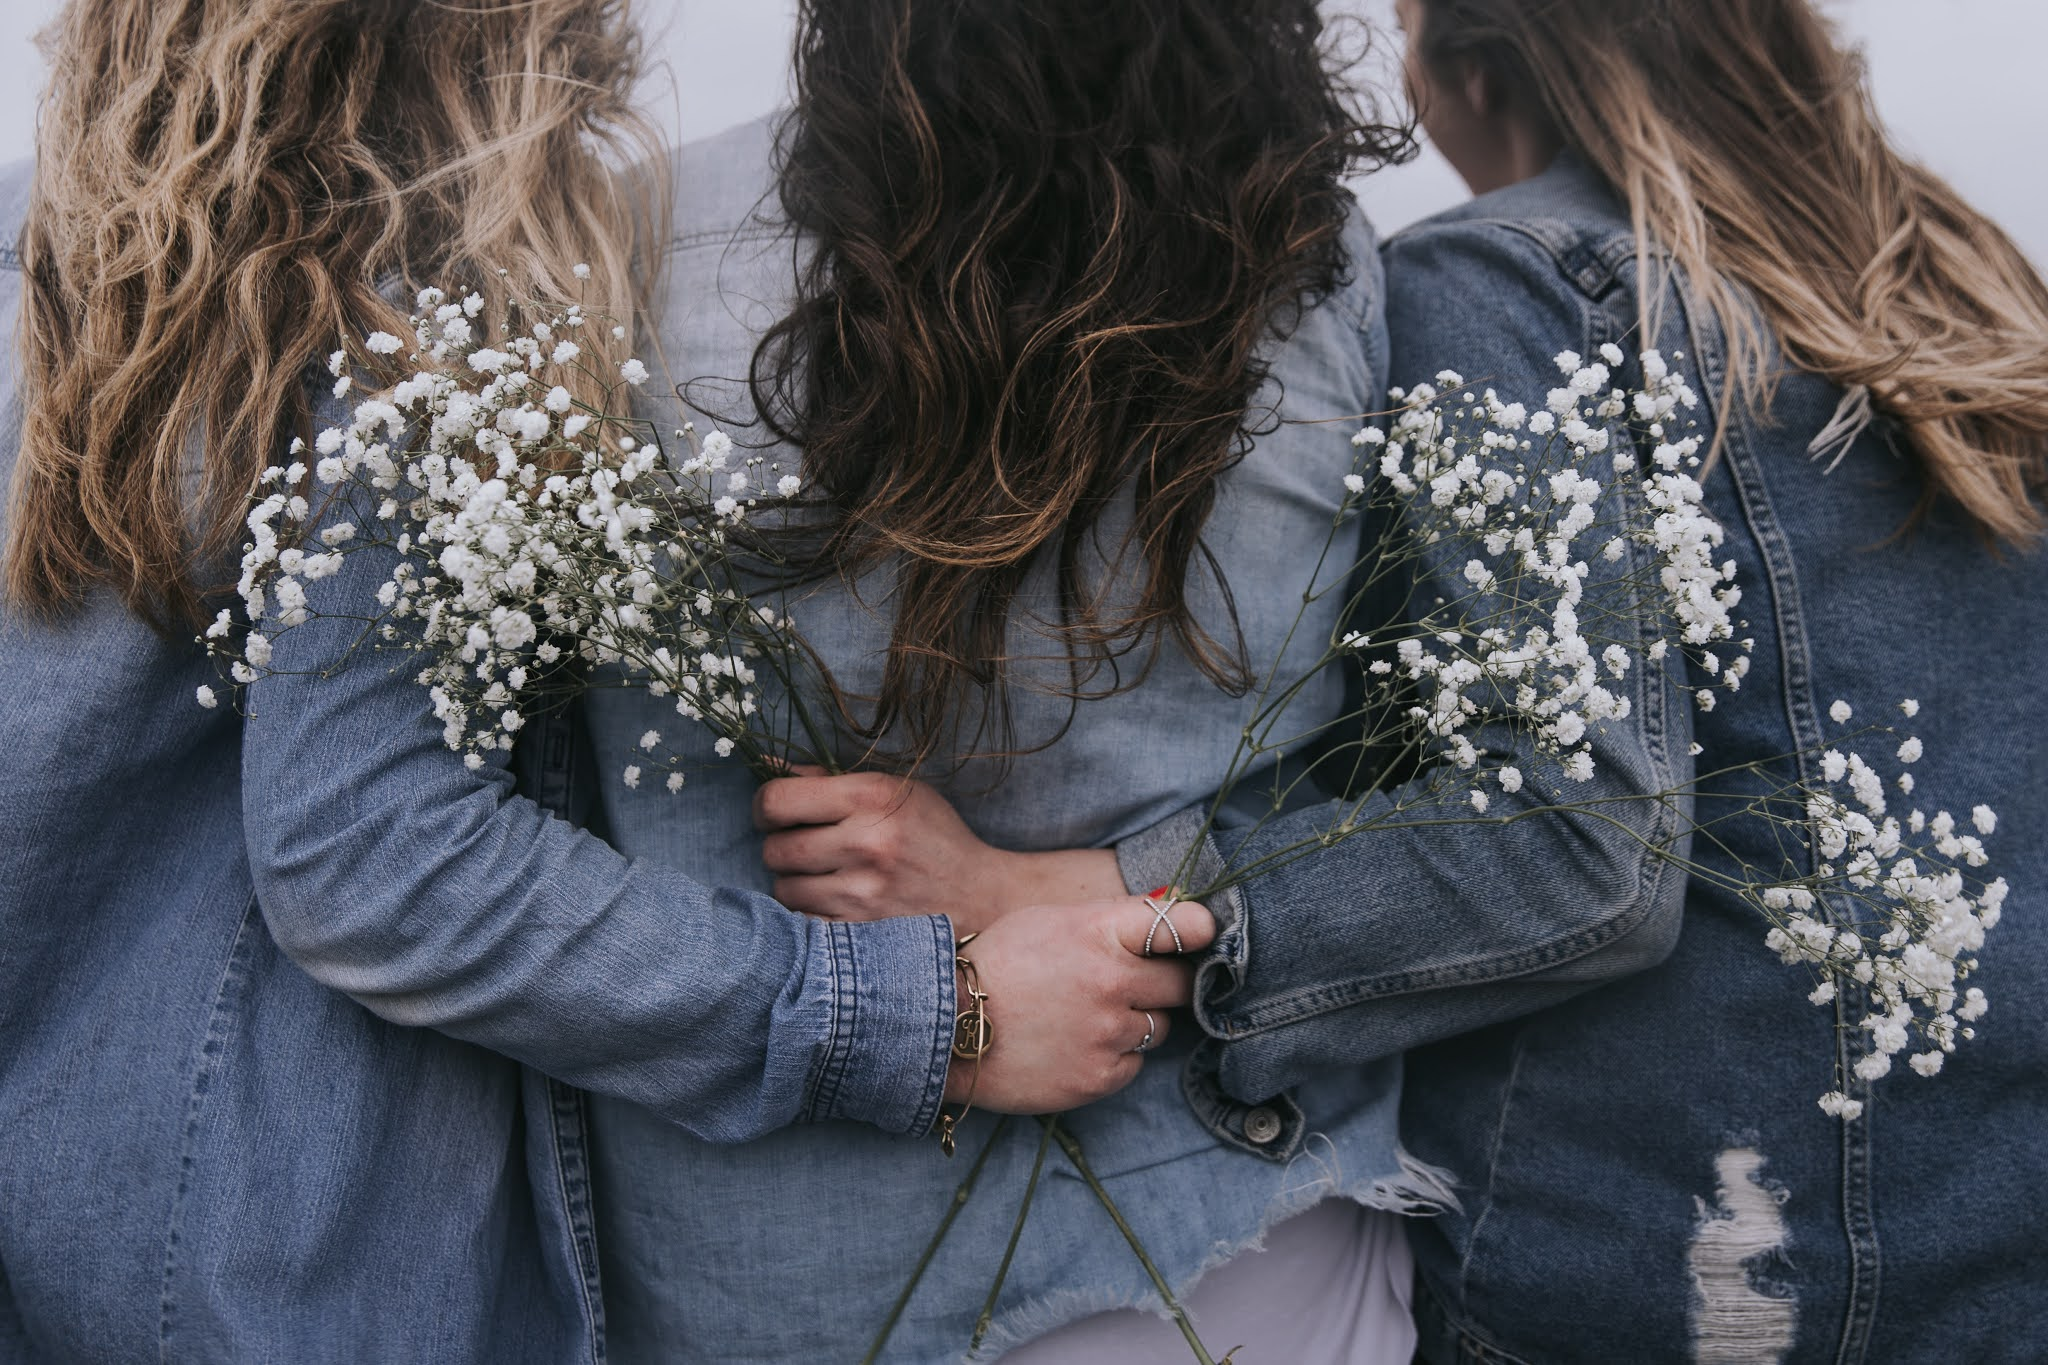 Friends, Holding flowers, Go to persons